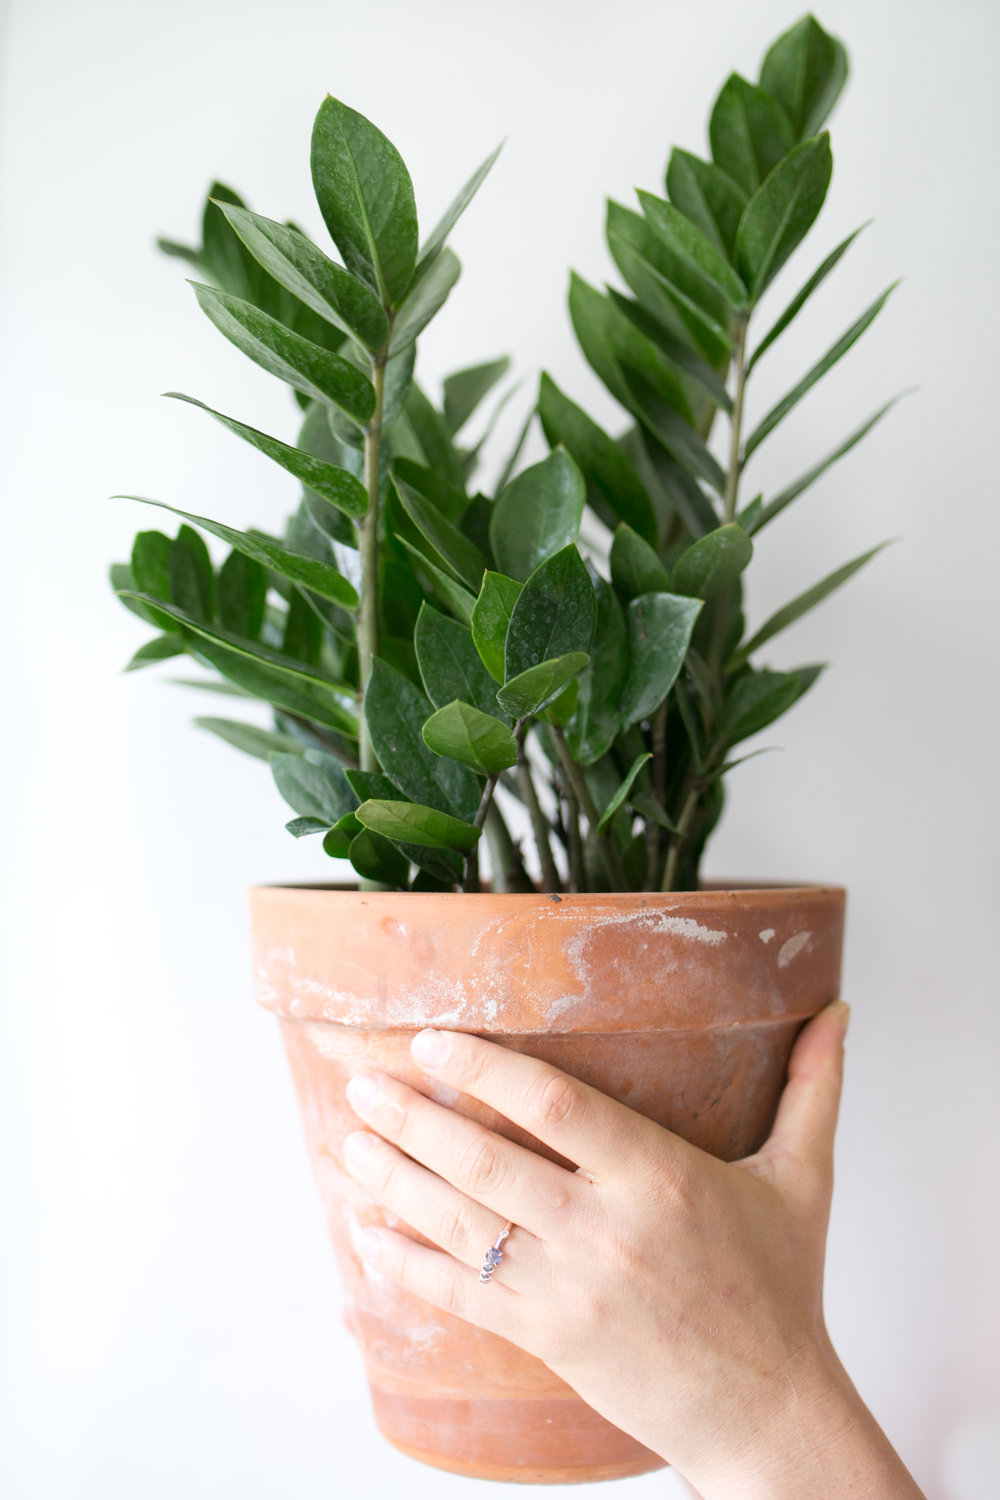 The ZZ Plant ( Zamioculcas zamiifolia ) is a great option for beginners because it can be divided easily. This species is also particularly tough and can handle a few mistakes and mishaps.